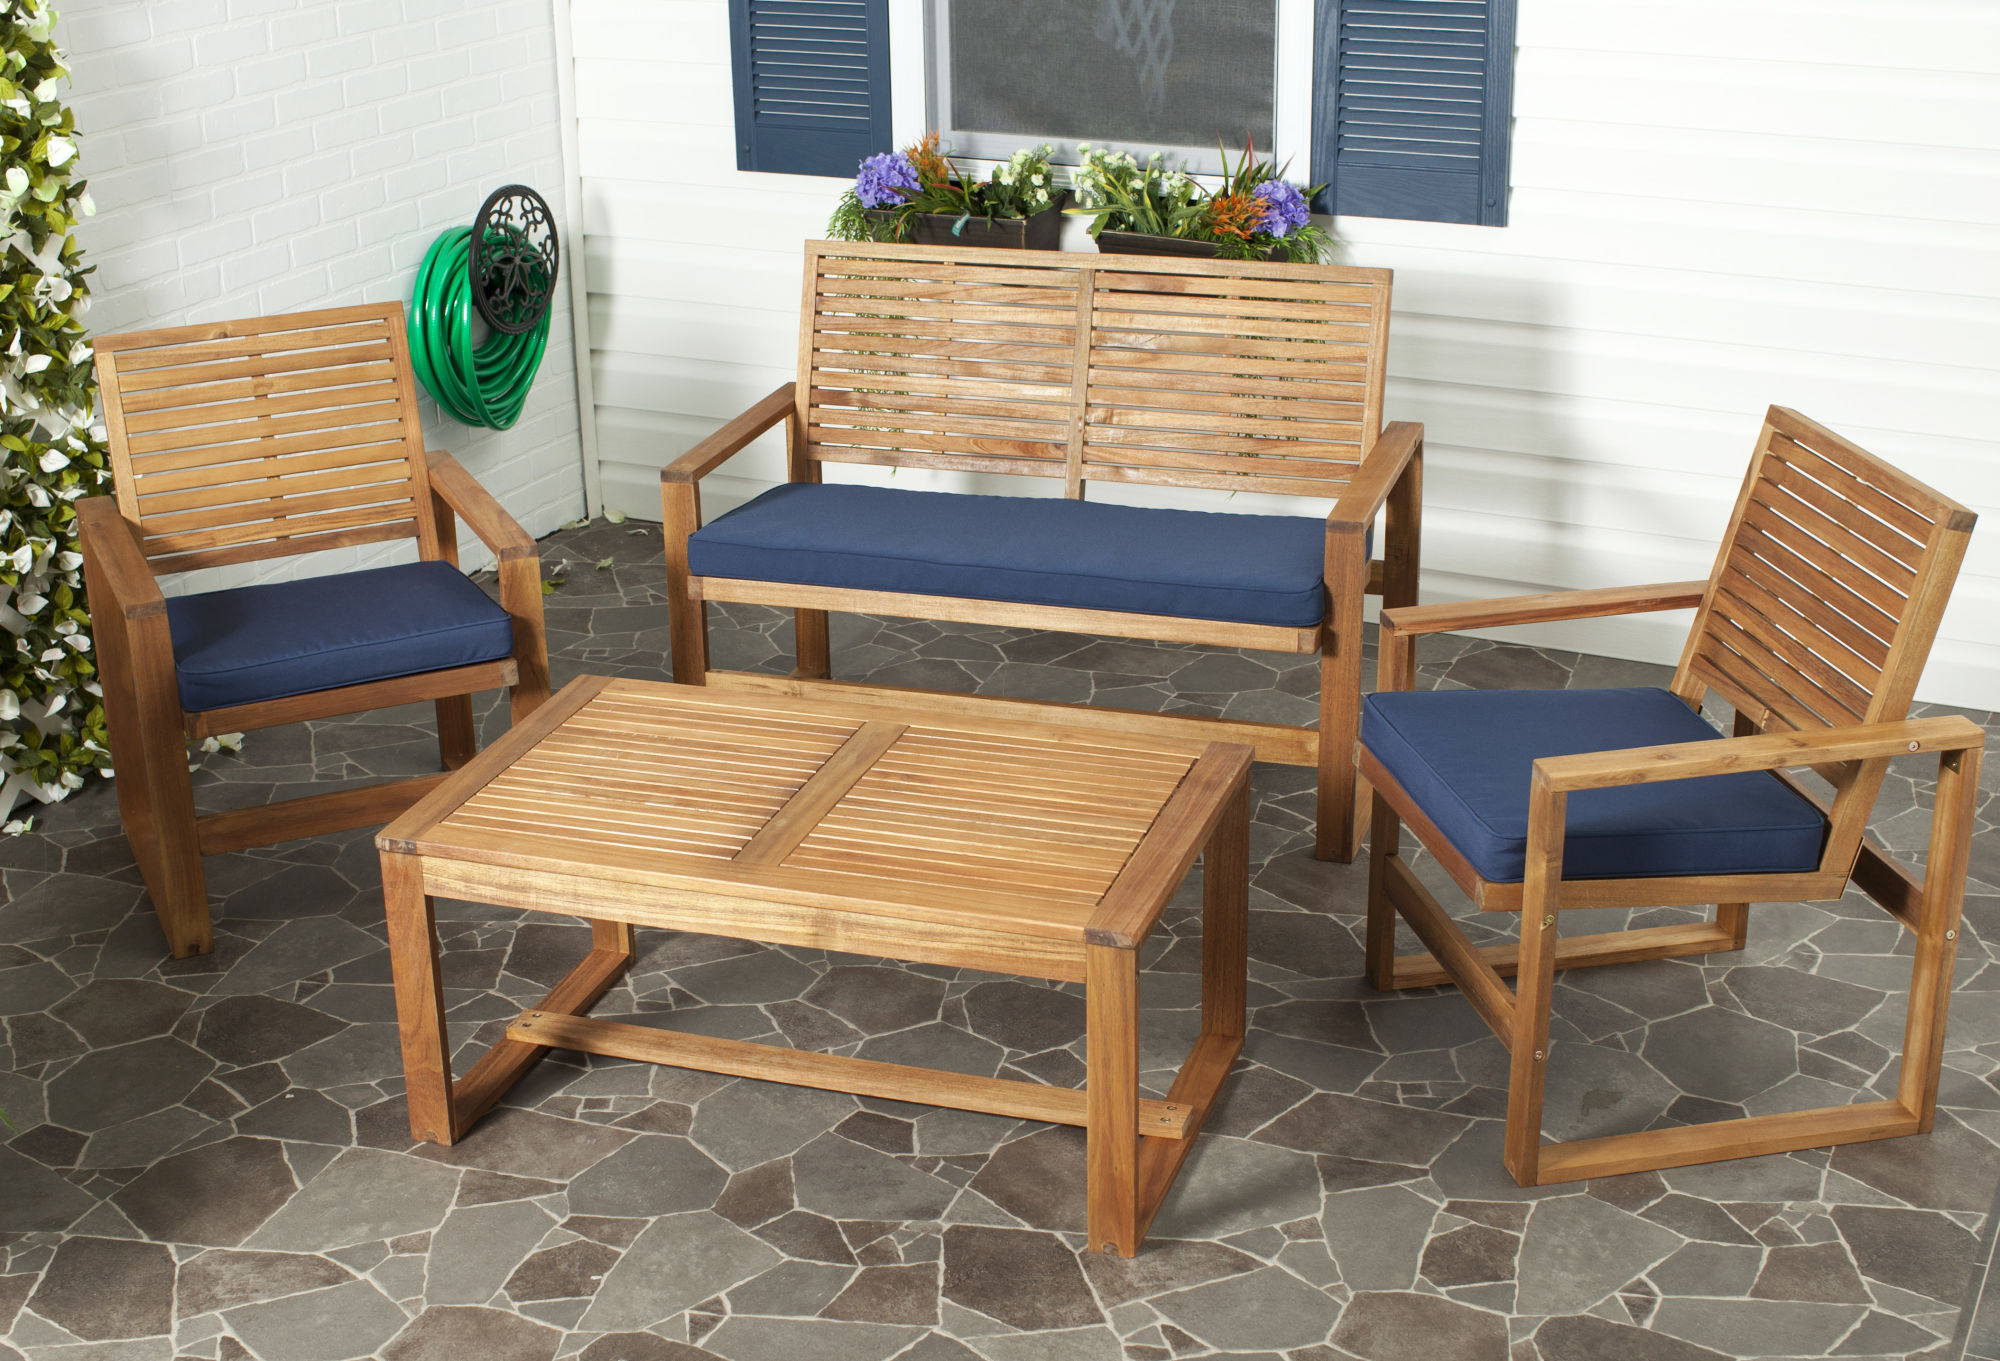 Ozark 4 Pc Outdoor Living Set on Outdoor Living Room Set id=69702